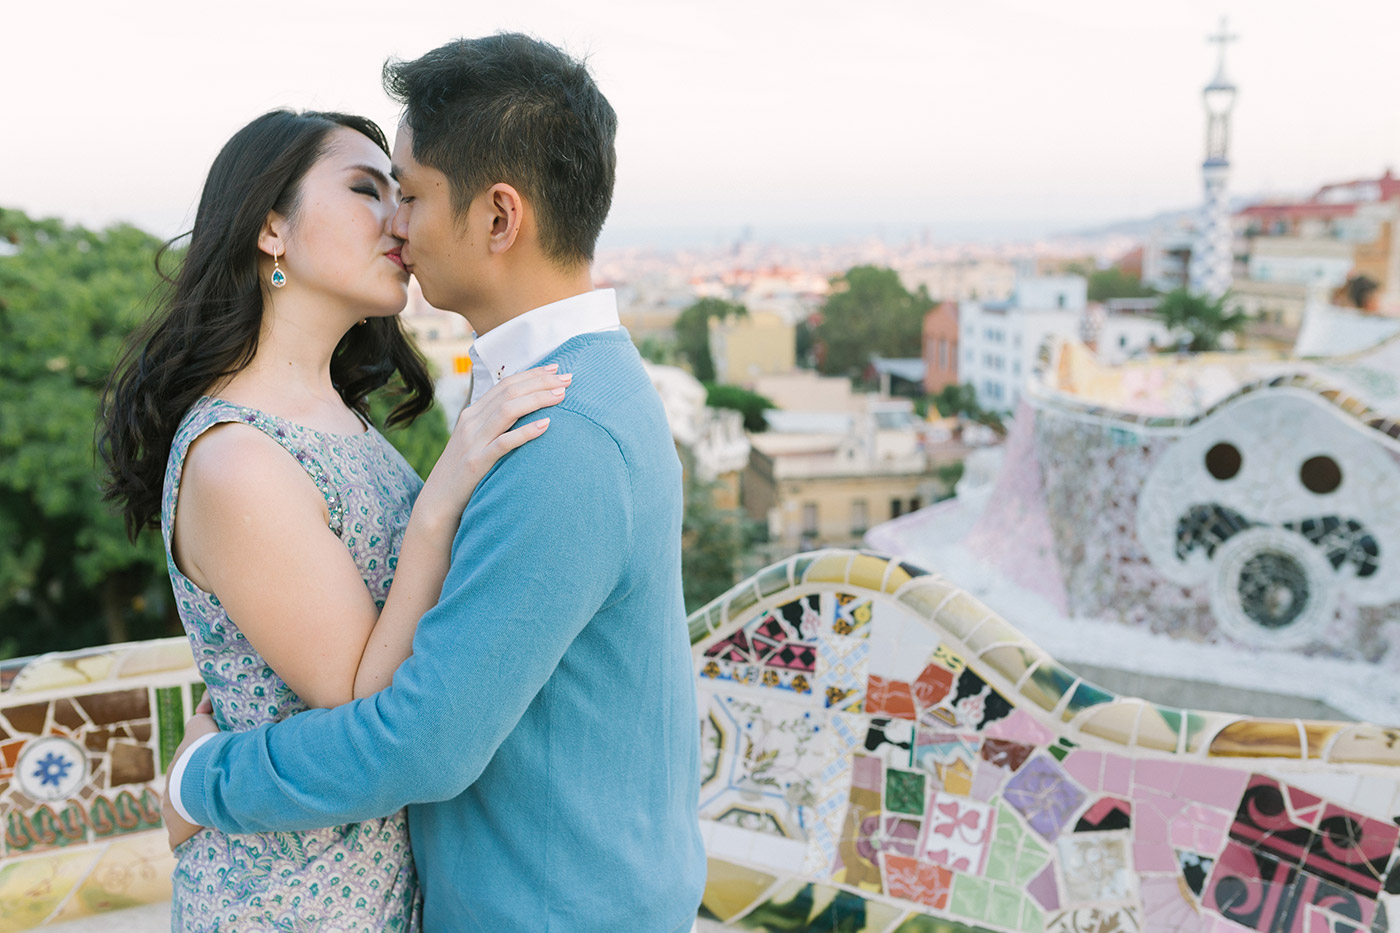 Lovely romantic couple| Elegant pre wedding photoshoot Barcelona |Engagement photographer Barcelona | Park Guell Engagement | Lena Karelova Photography